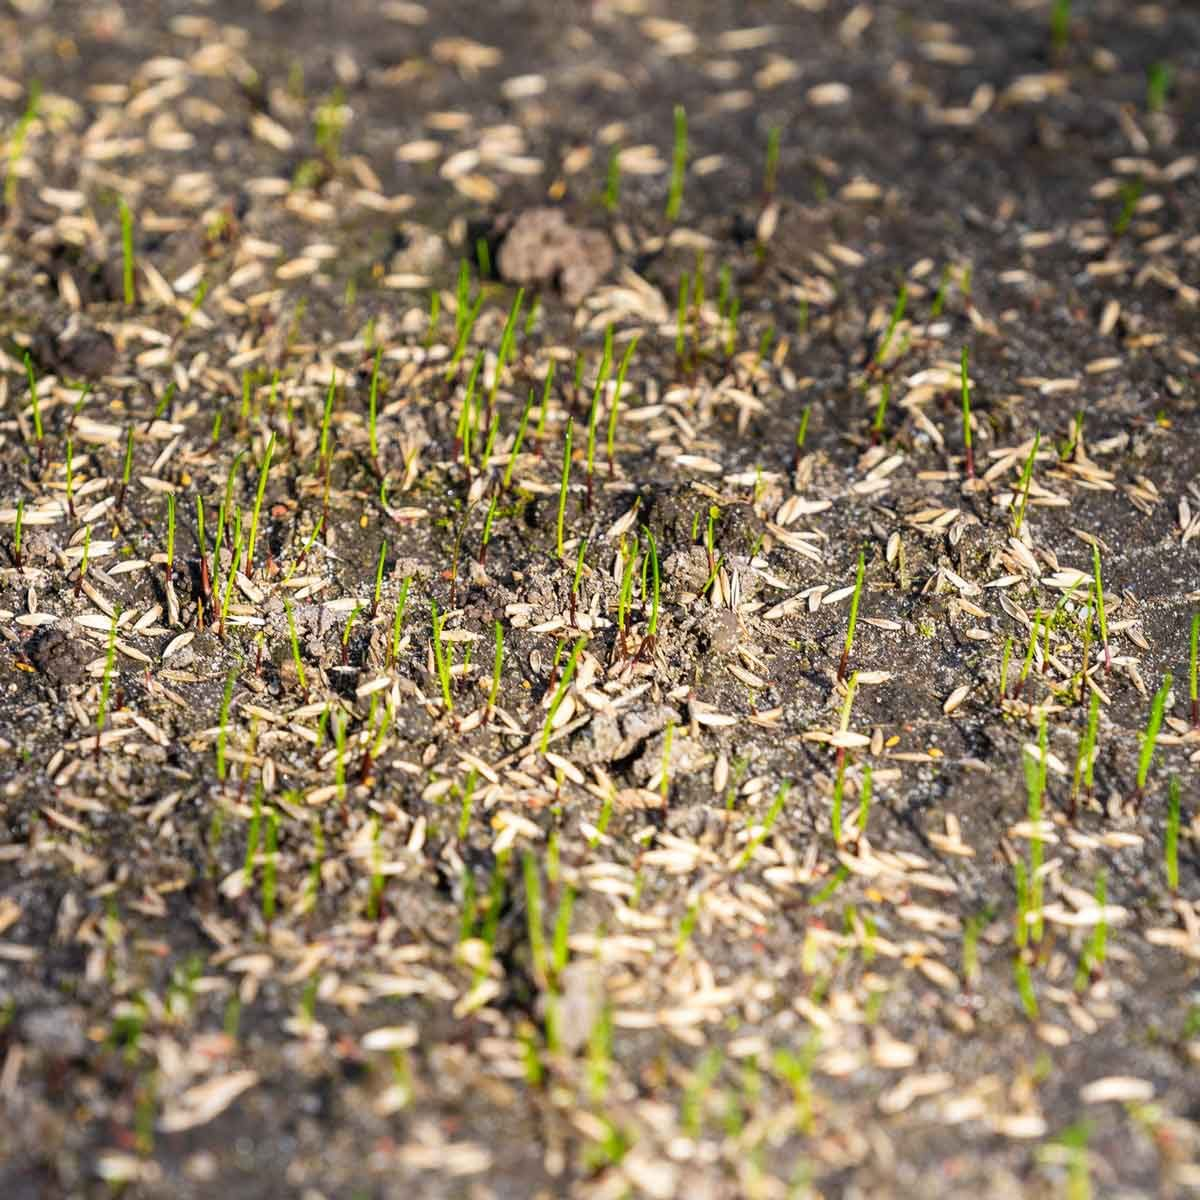 Grass seed starting to grow